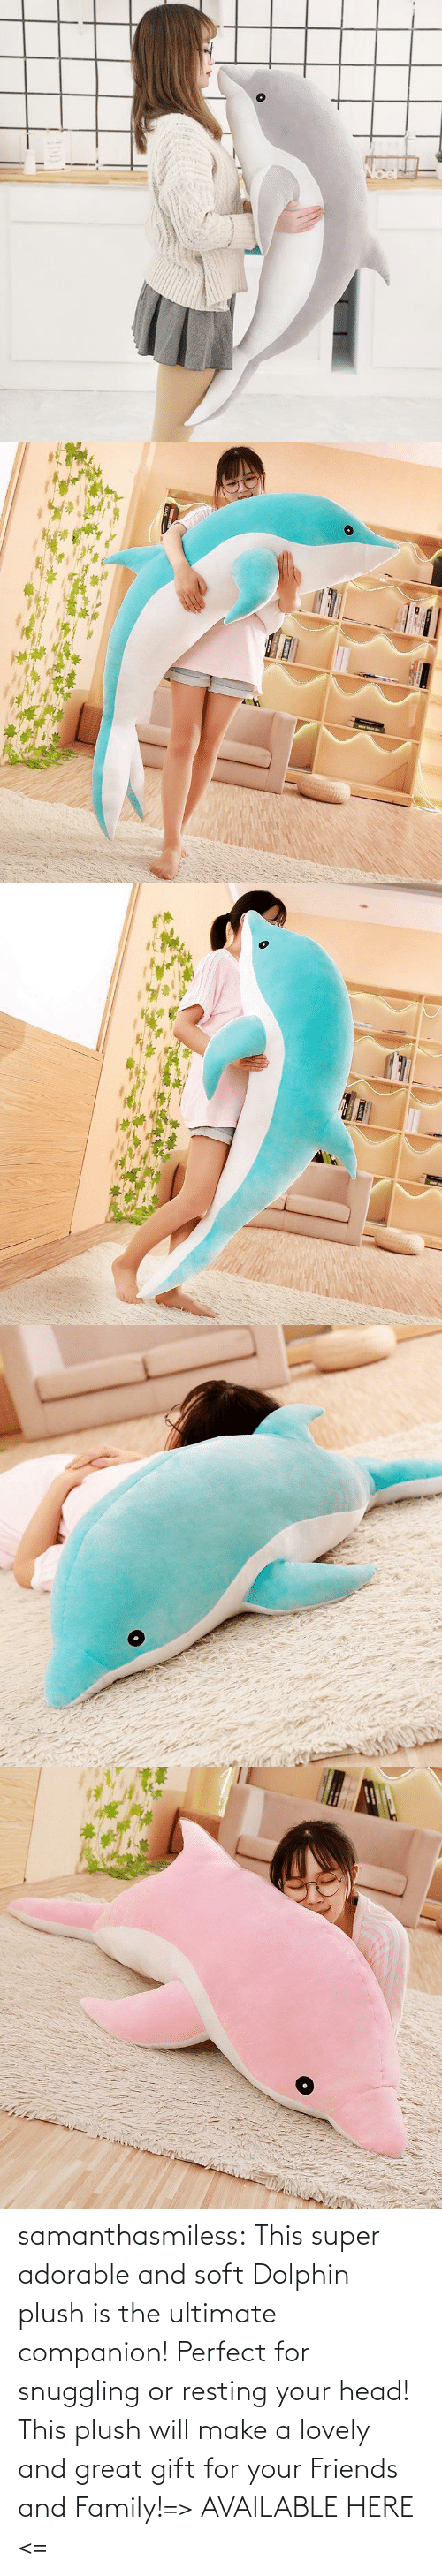 super: samanthasmiless:  This super adorable and soft Dolphin plush is the ultimate companion! Perfect for snuggling or resting your head! This plush will make a lovely and great gift for your Friends and Family!=> AVAILABLE HERE <=